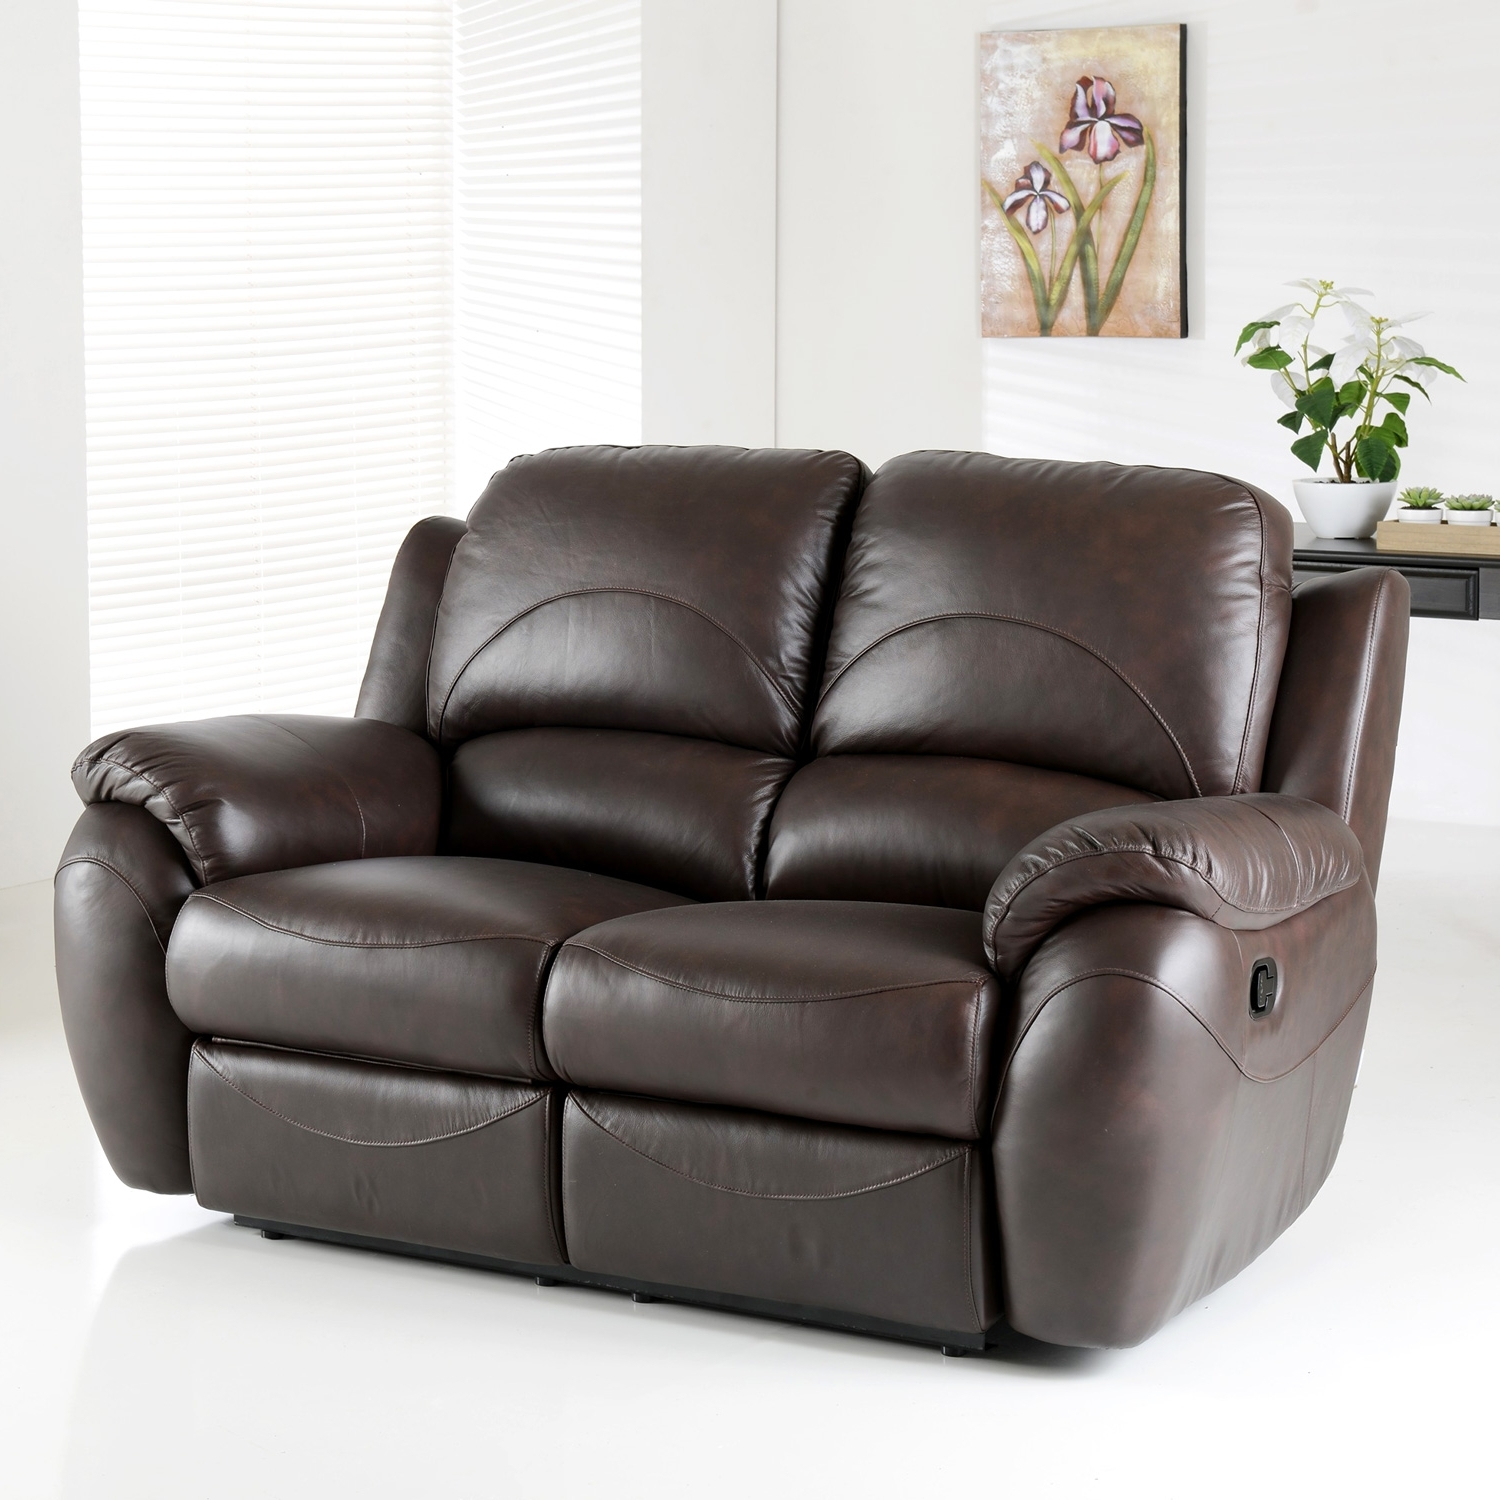 Craigslist Leather Sofas Within Best And Newest Cheap Reclining Loveseat With Console Used Leather Recliner Chair (View 11 of 15)